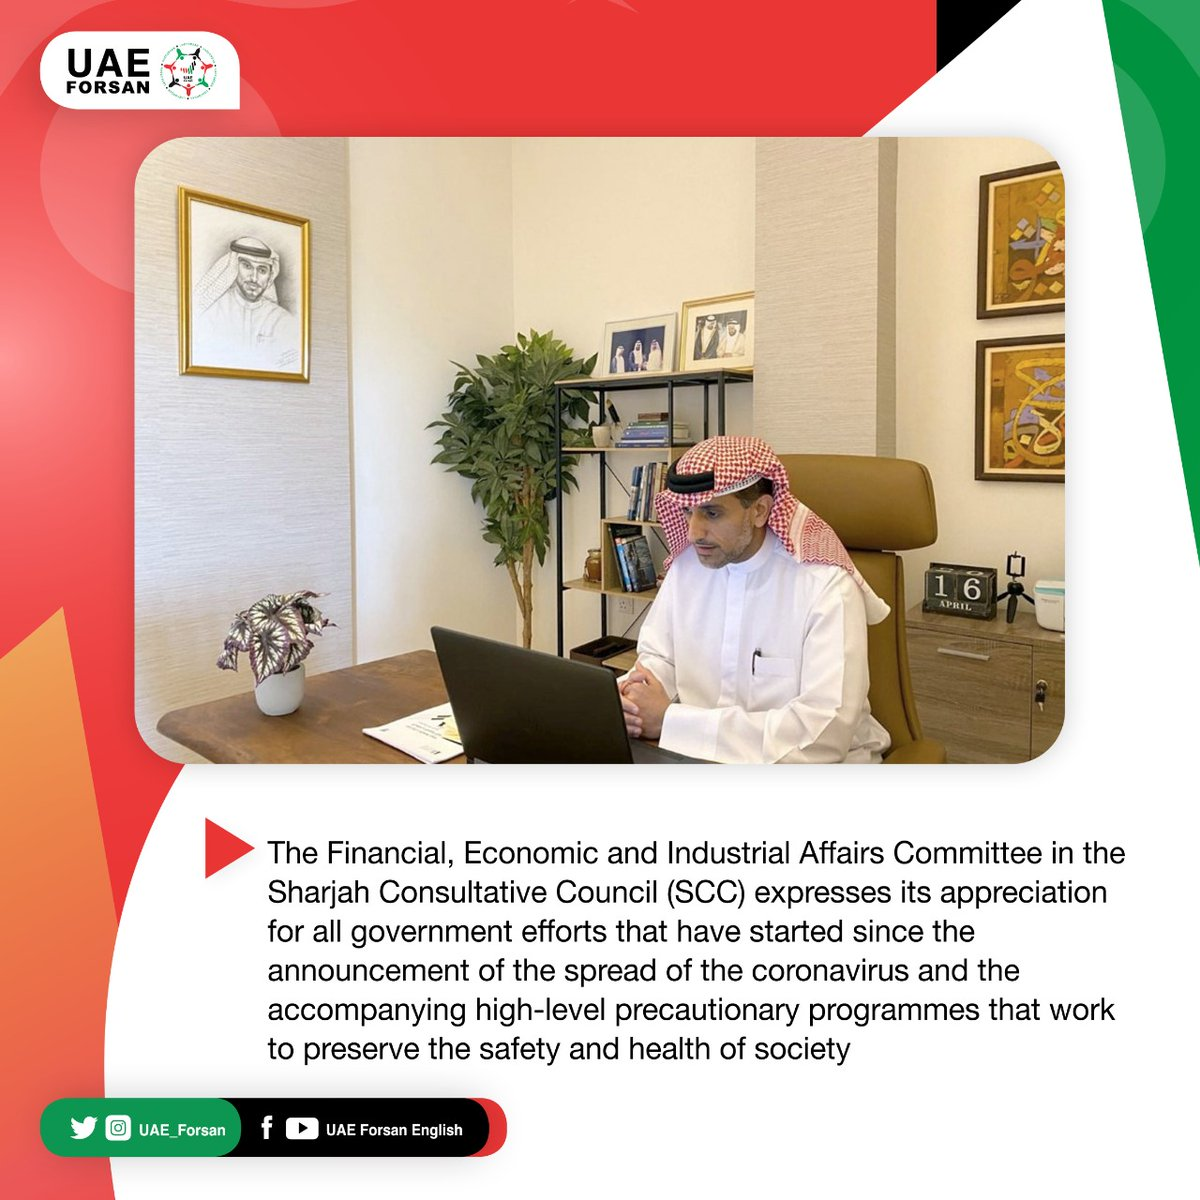 Uae F O R S A N On Twitter The Financial Economic And Industrial Affairs Committee In The Sharjah Consultative Council Expresses Its Appreciation For All Government Efforts That Have Started